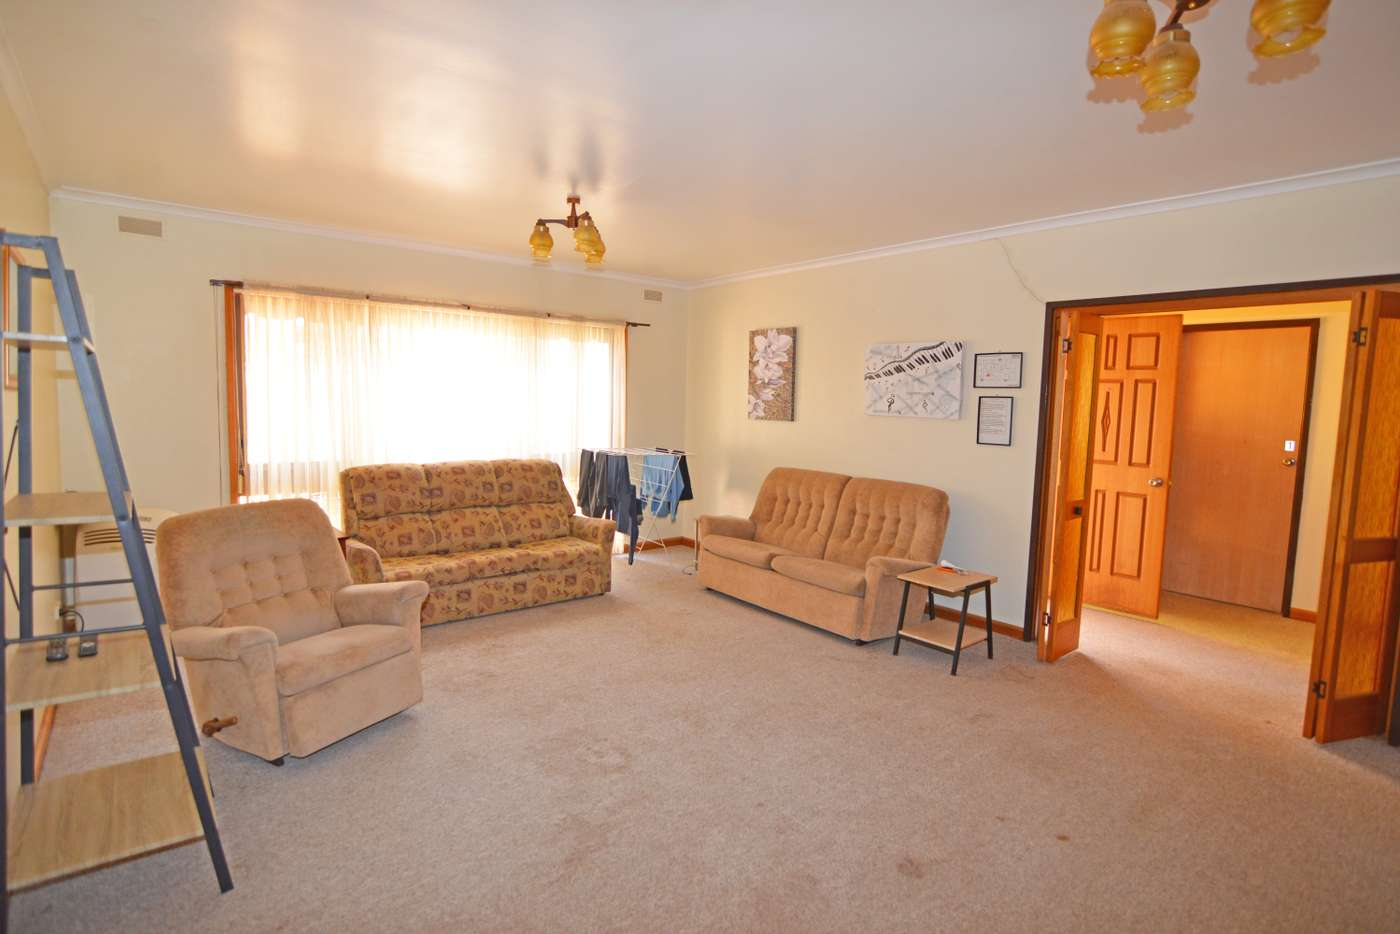 Sixth view of Homely house listing, Lot 3/32 Box Street, Merbein VIC 3505